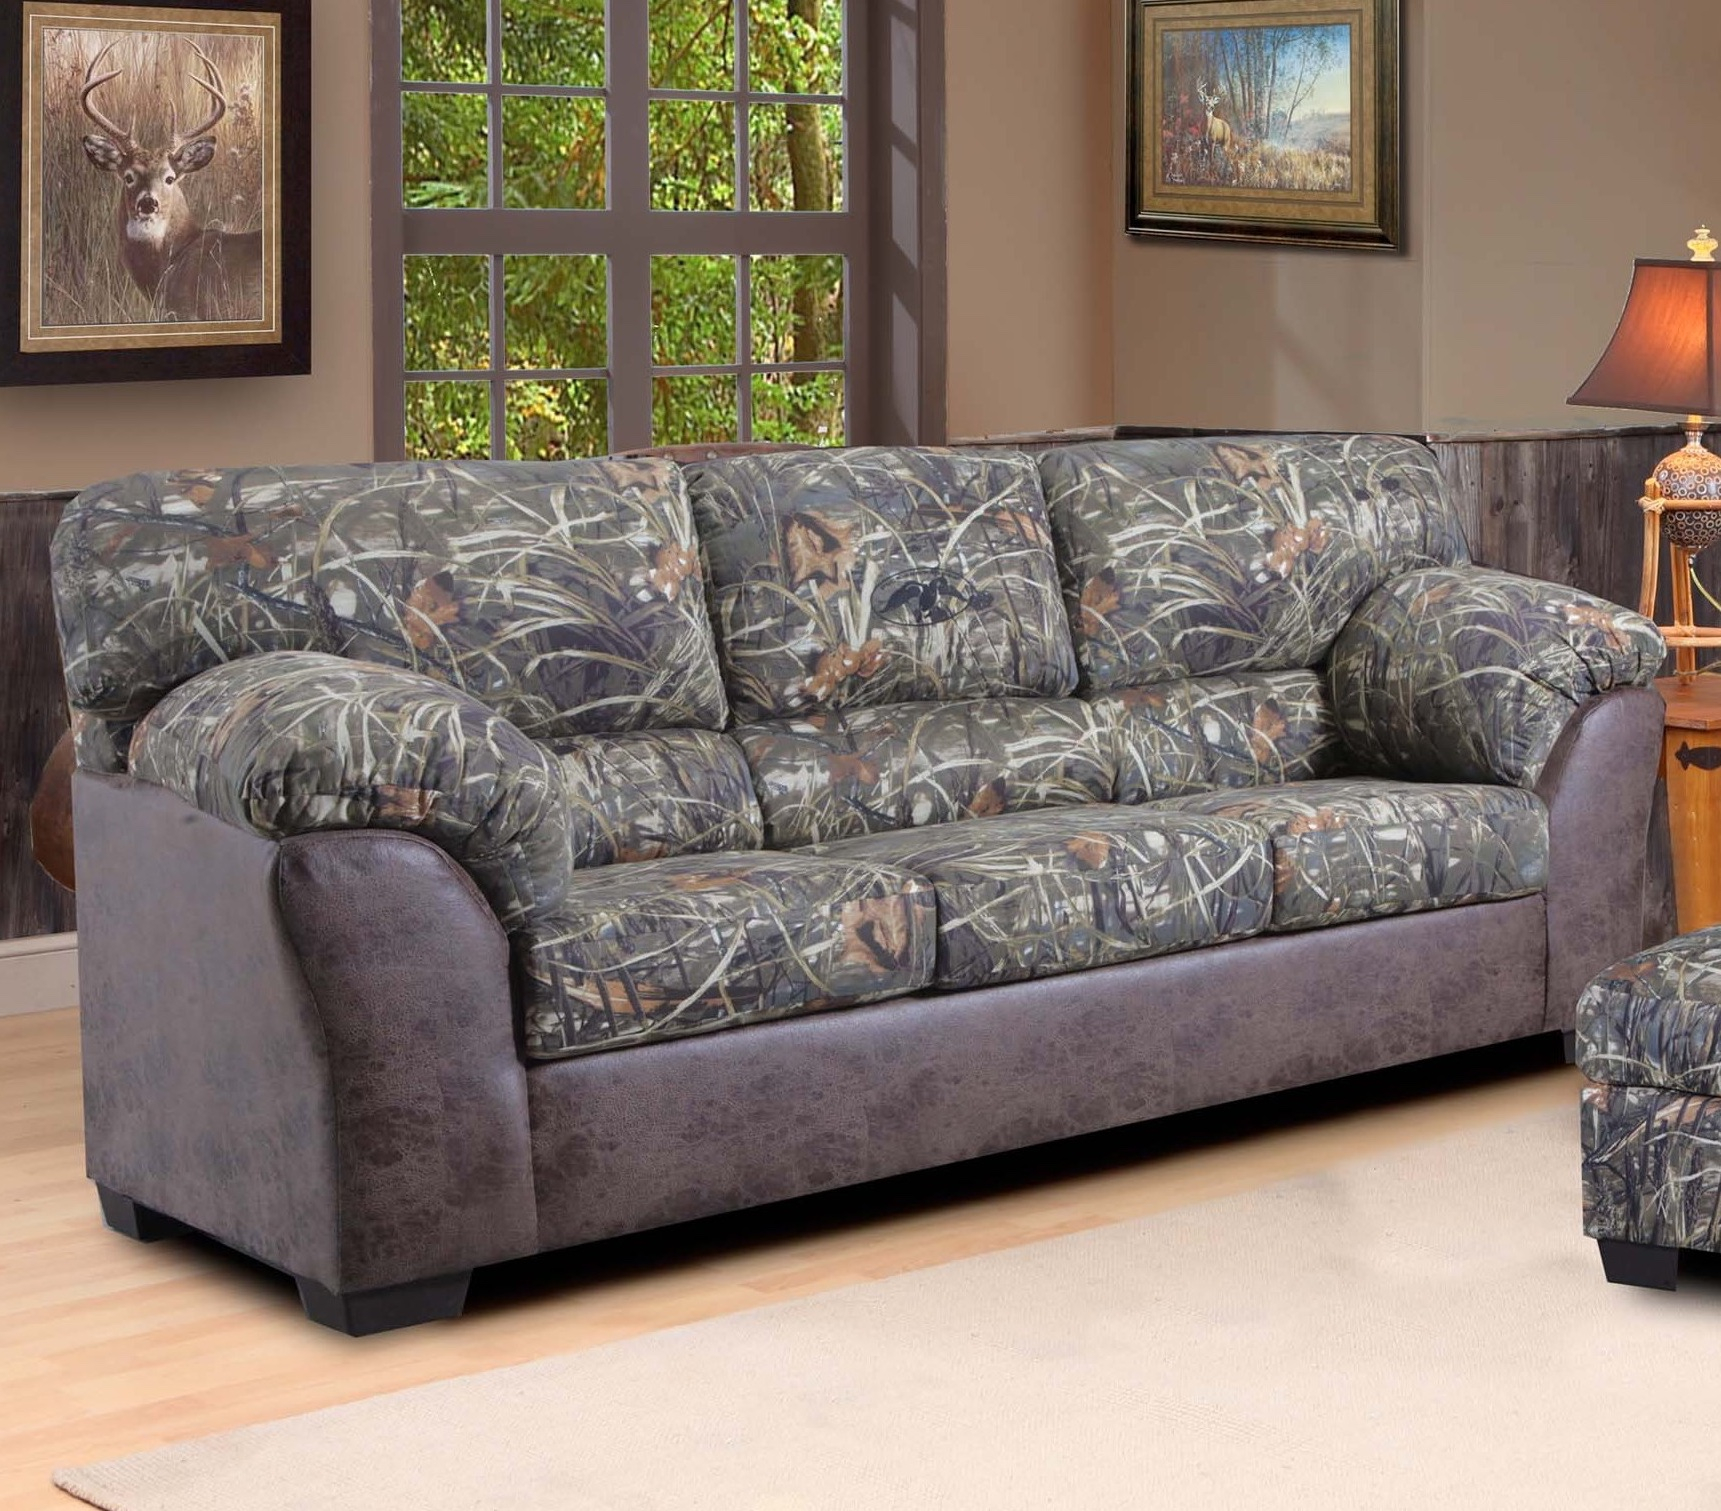 Furniture Astounding Camouflage Furniture For Home Design throughout 13 Genius Ways How to Improve Camouflage Living Room Sets